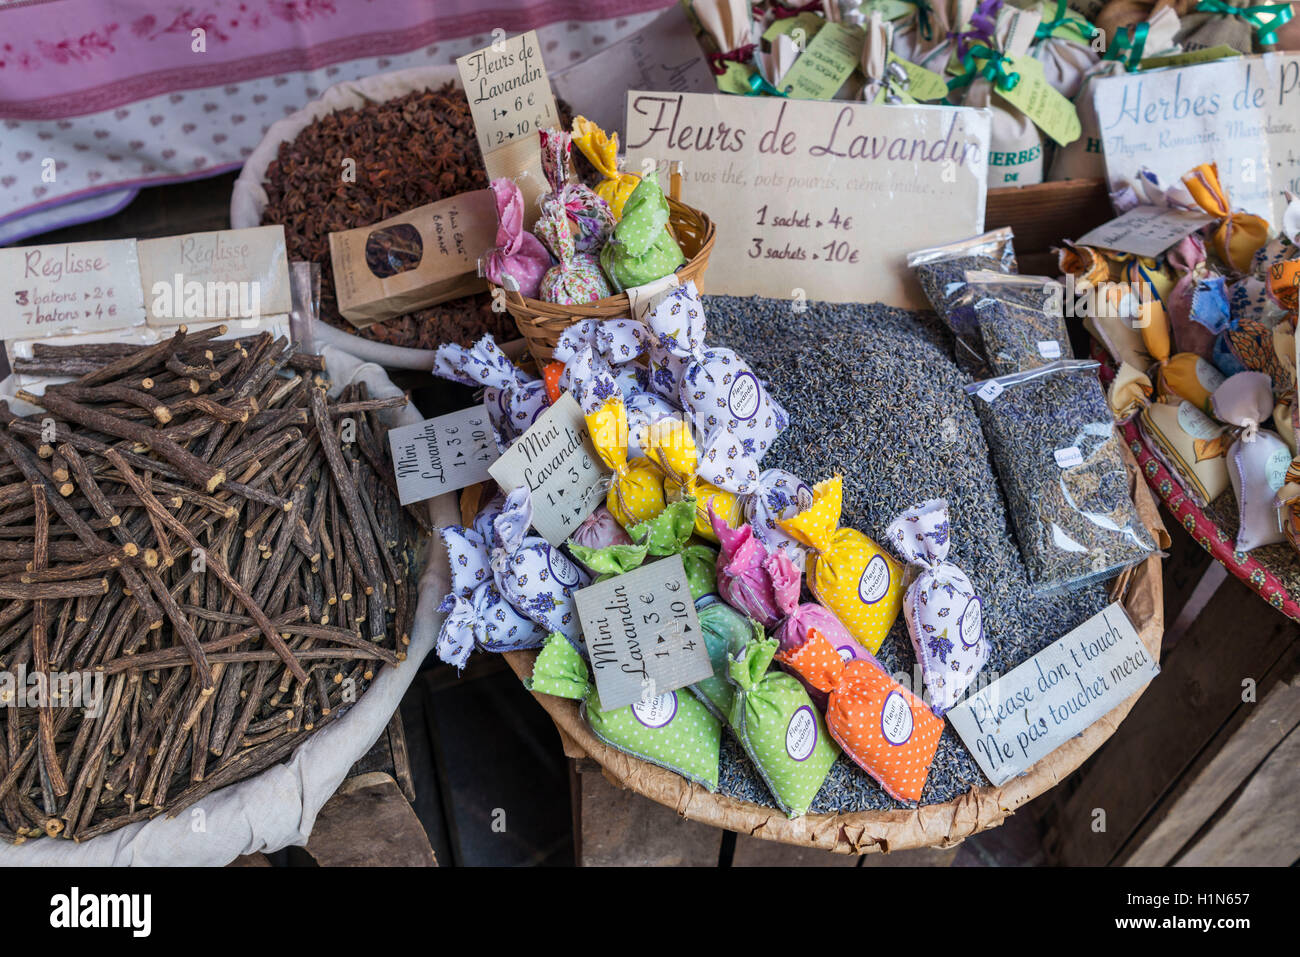 Spices and Souvenirs, Herbes de Provence, Lavandin, Roses,  Market Stall, Vieux Nice, Cours Saleya,  Alpes Maritimes, Stock Photo